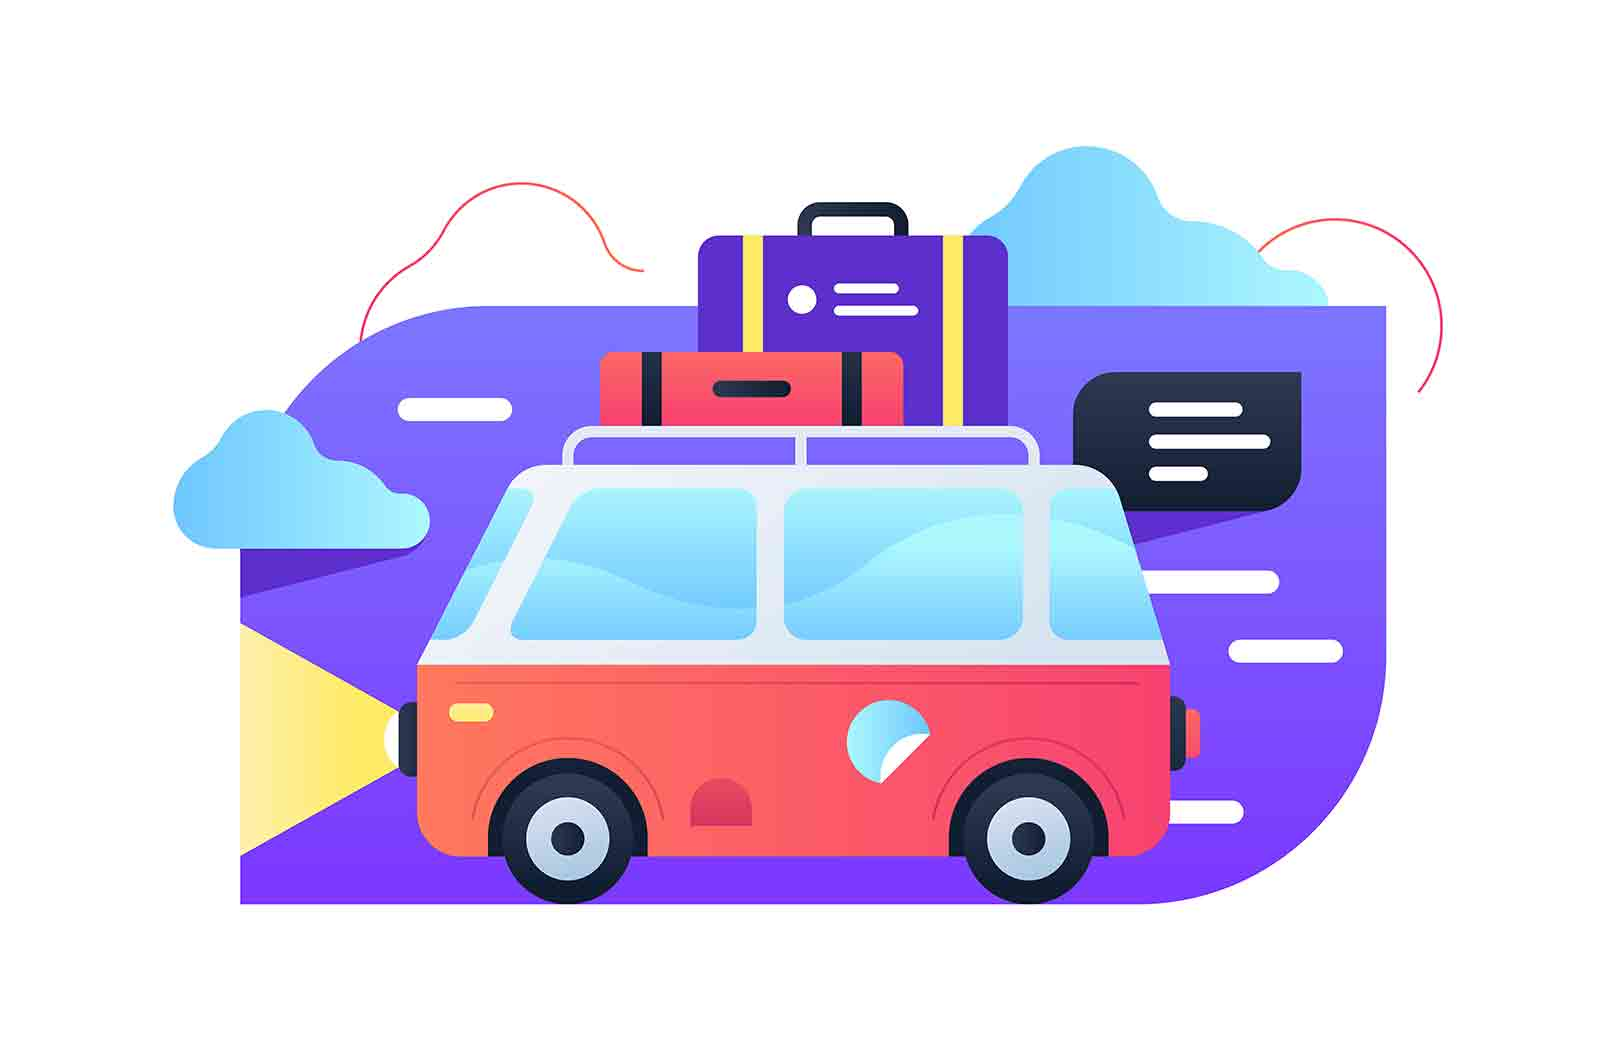 Travelling by car vector illustration. Bright red truck with luggage on top flat style. Joyful weekend. Family mini trip to nature concept.